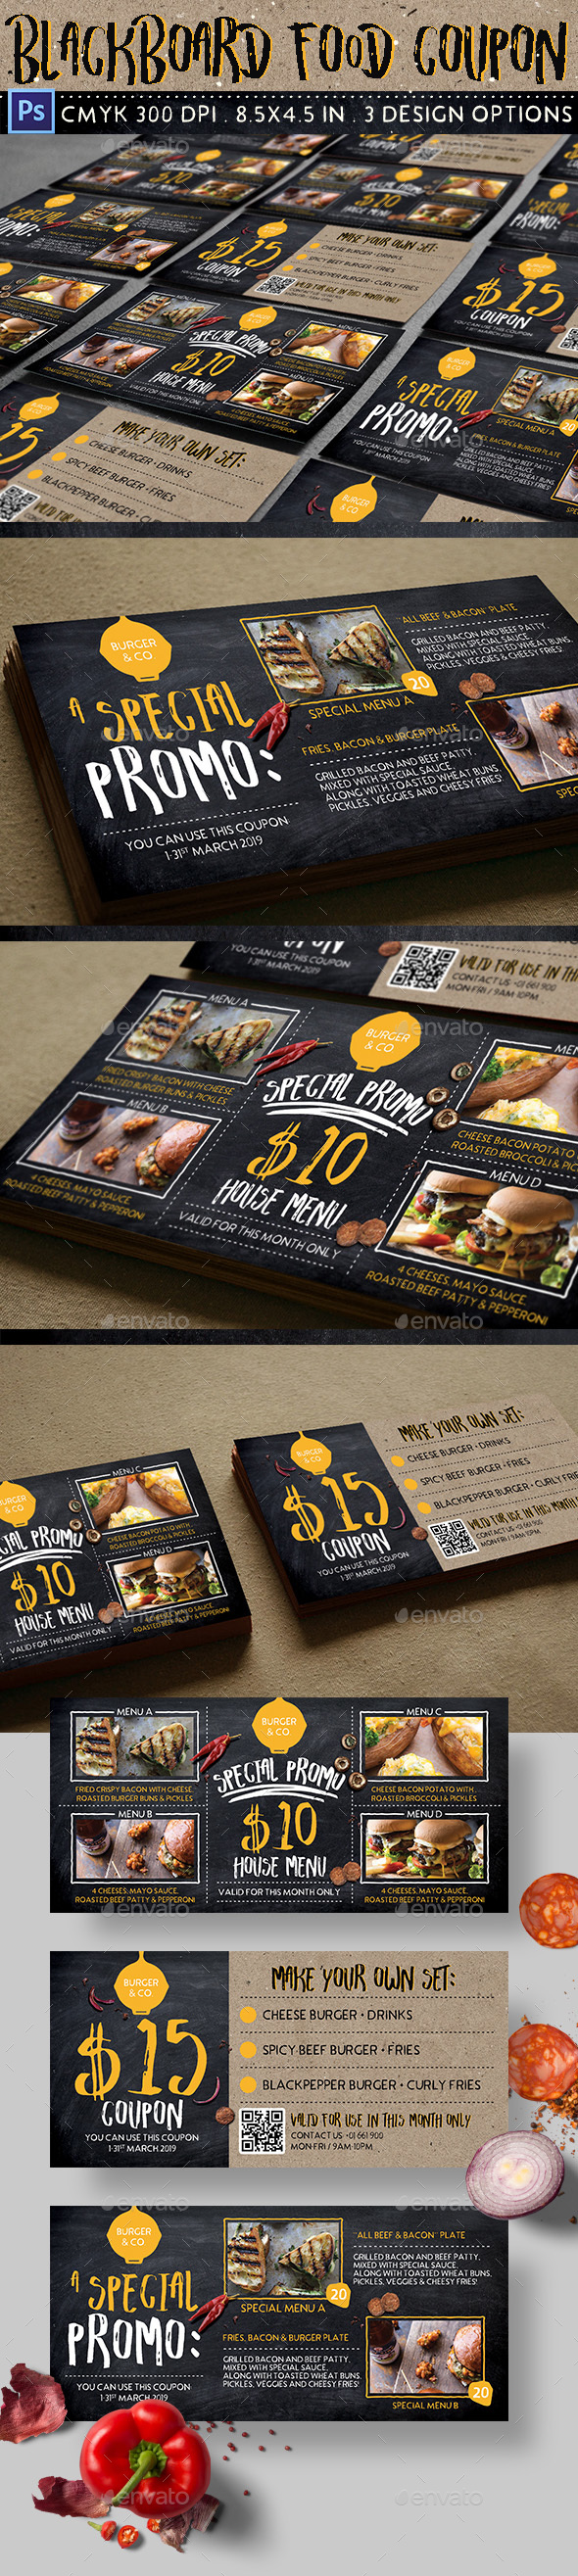 Blackboard Food Coupon - Loyalty Cards Cards & Invites